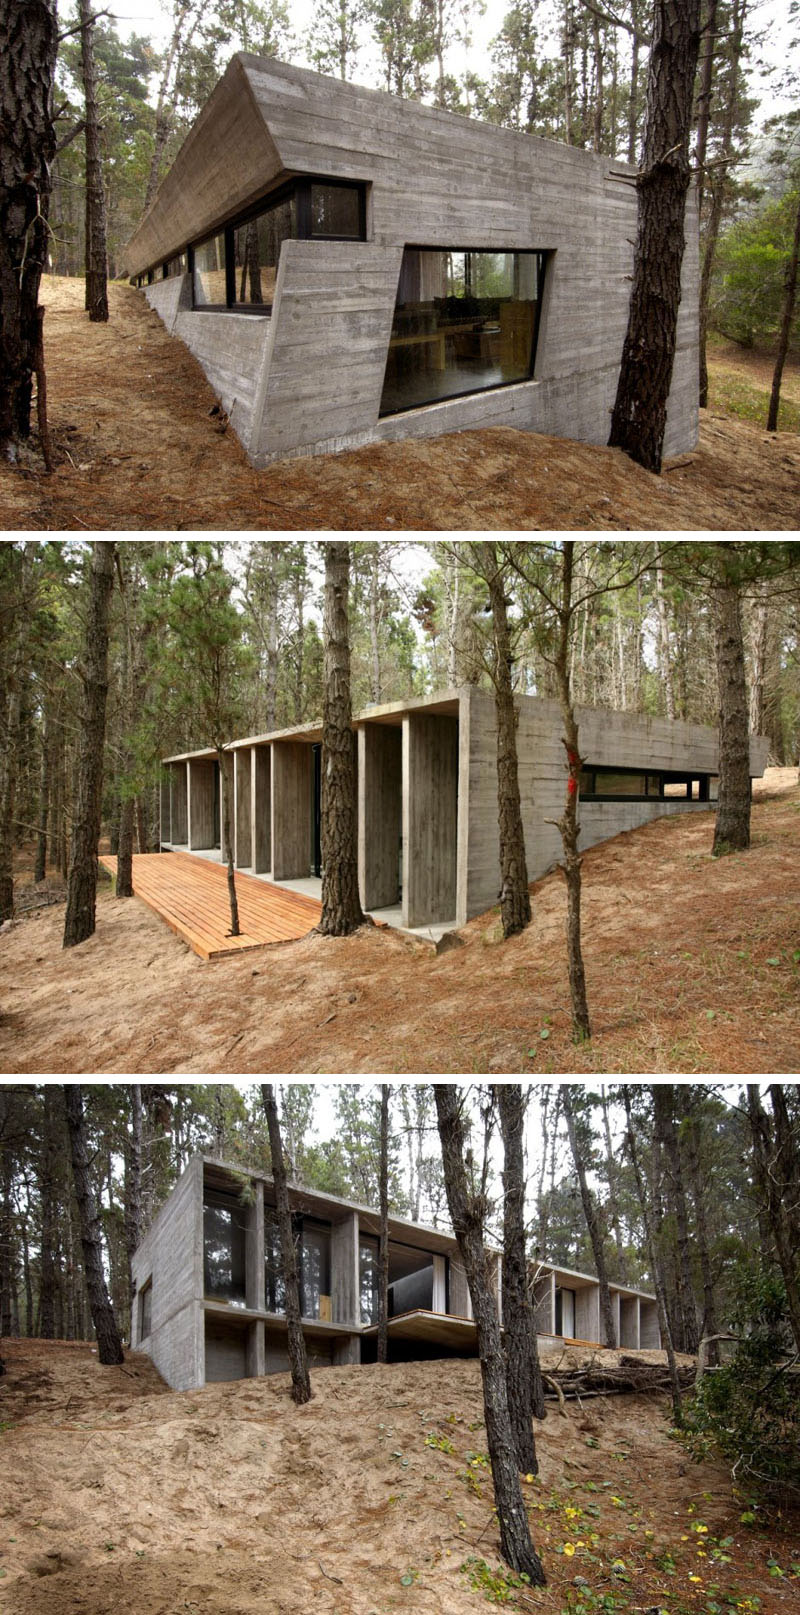 concrete-home-in-forest-201216-456-06